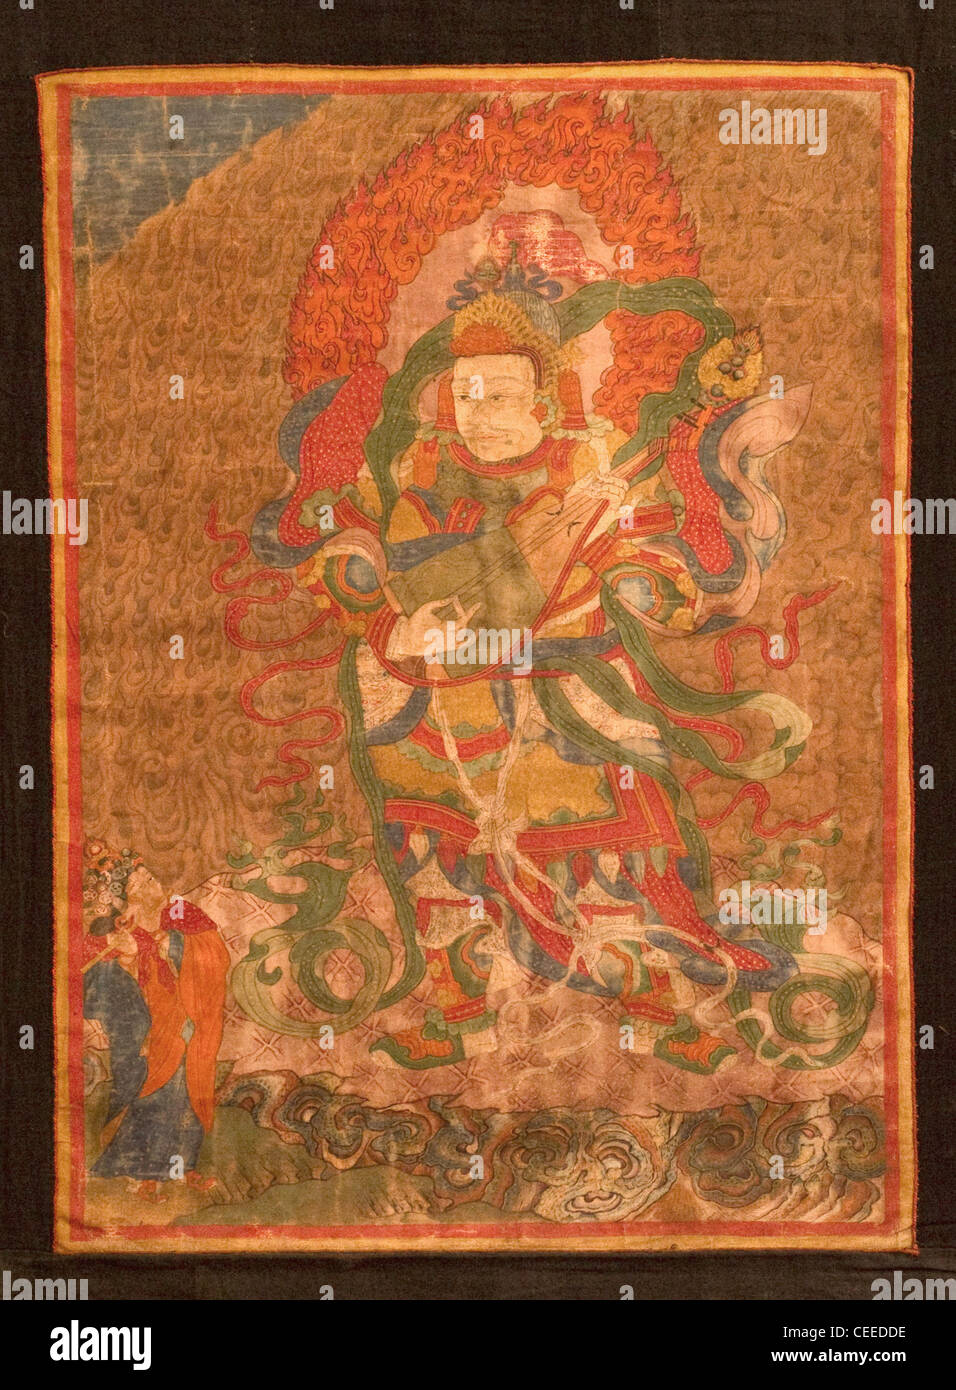 PRE-17TH Century Thangkas or scrolls painted by the monks of Chemrey monastery as a token of religious devotion. - Stock Image